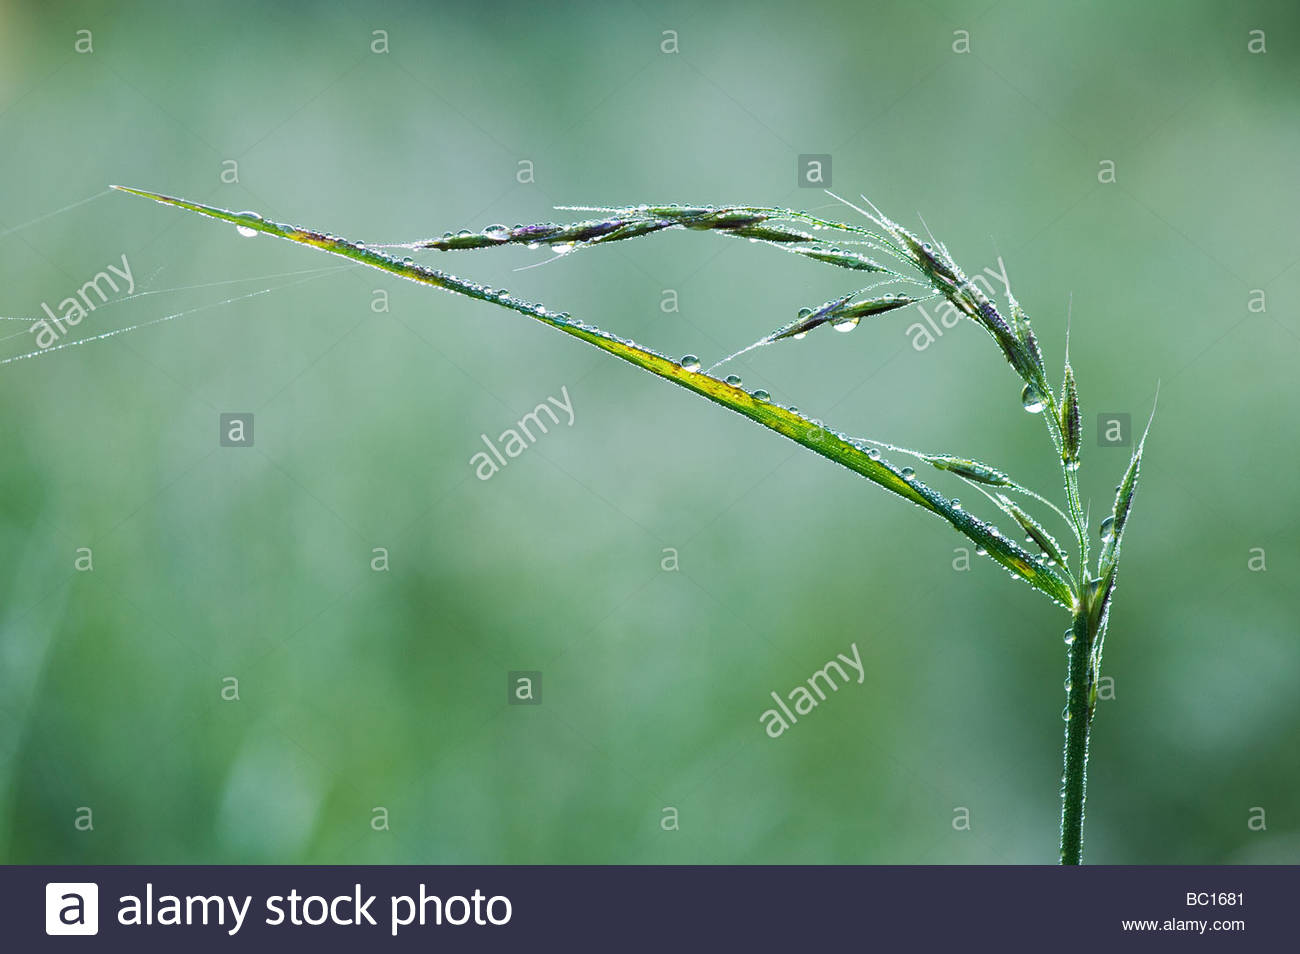 Water drops on grass that has gone to seeds - Stock Image